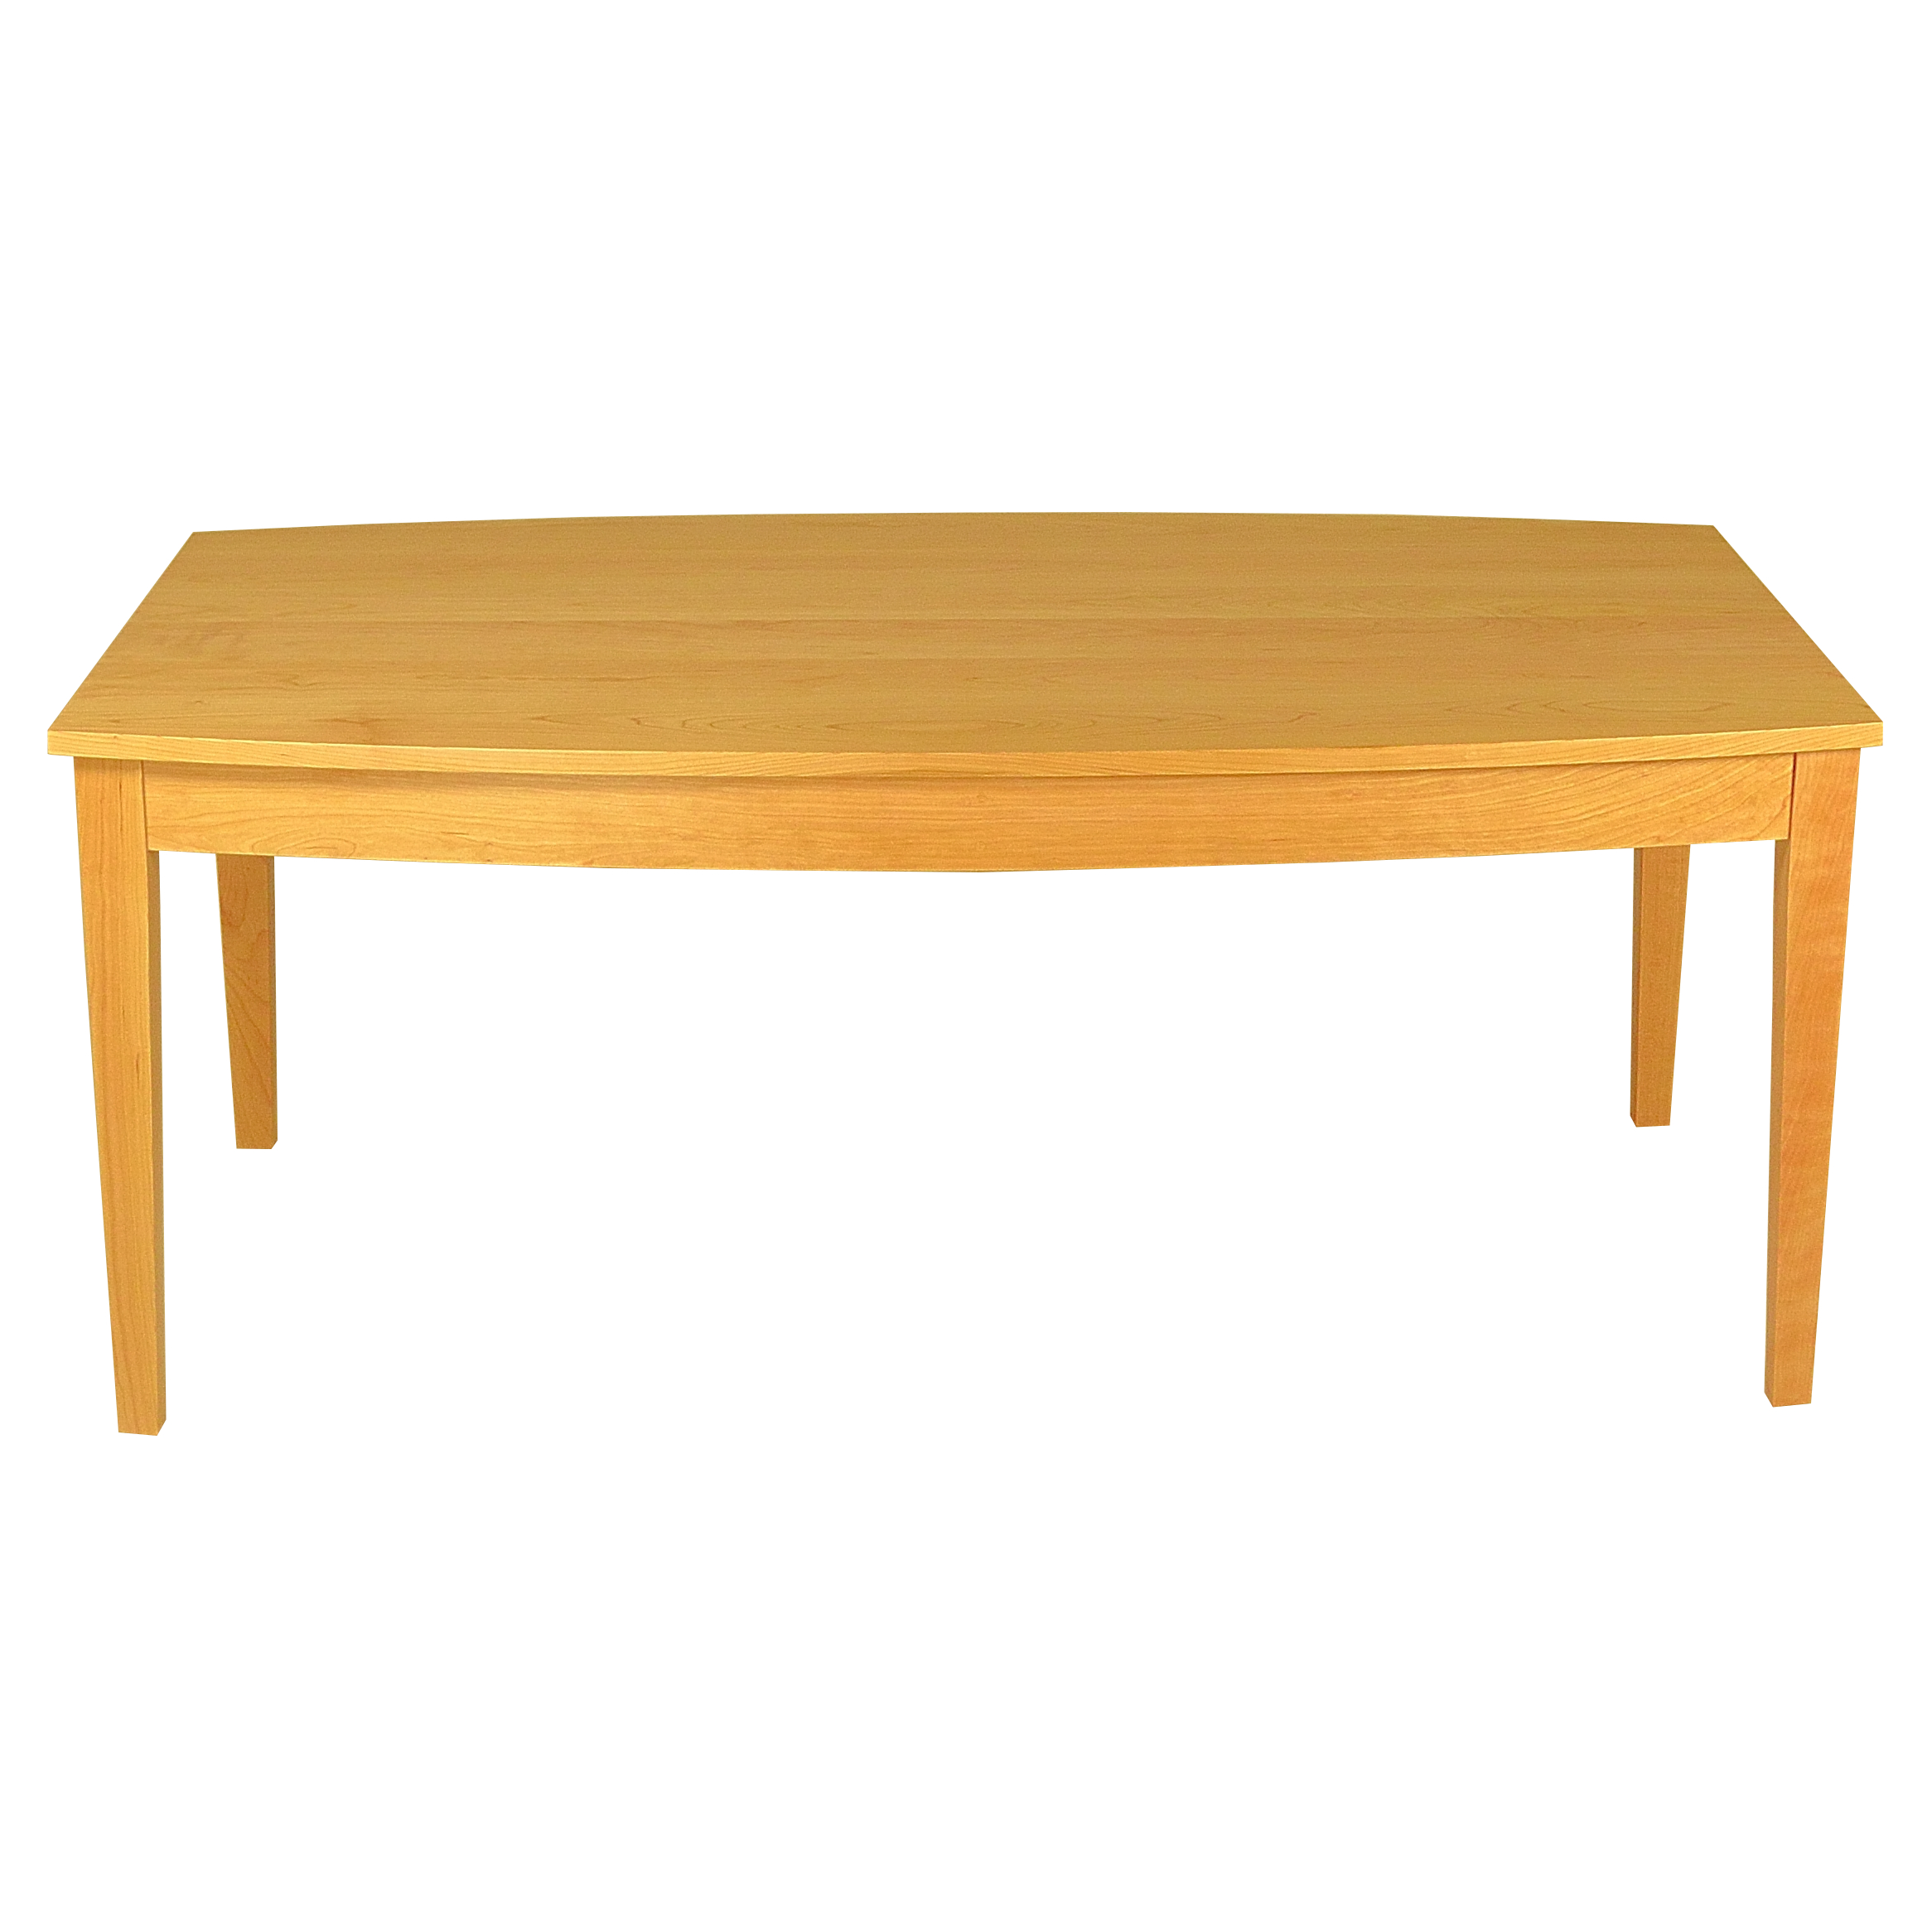 Curved Top Dining Table